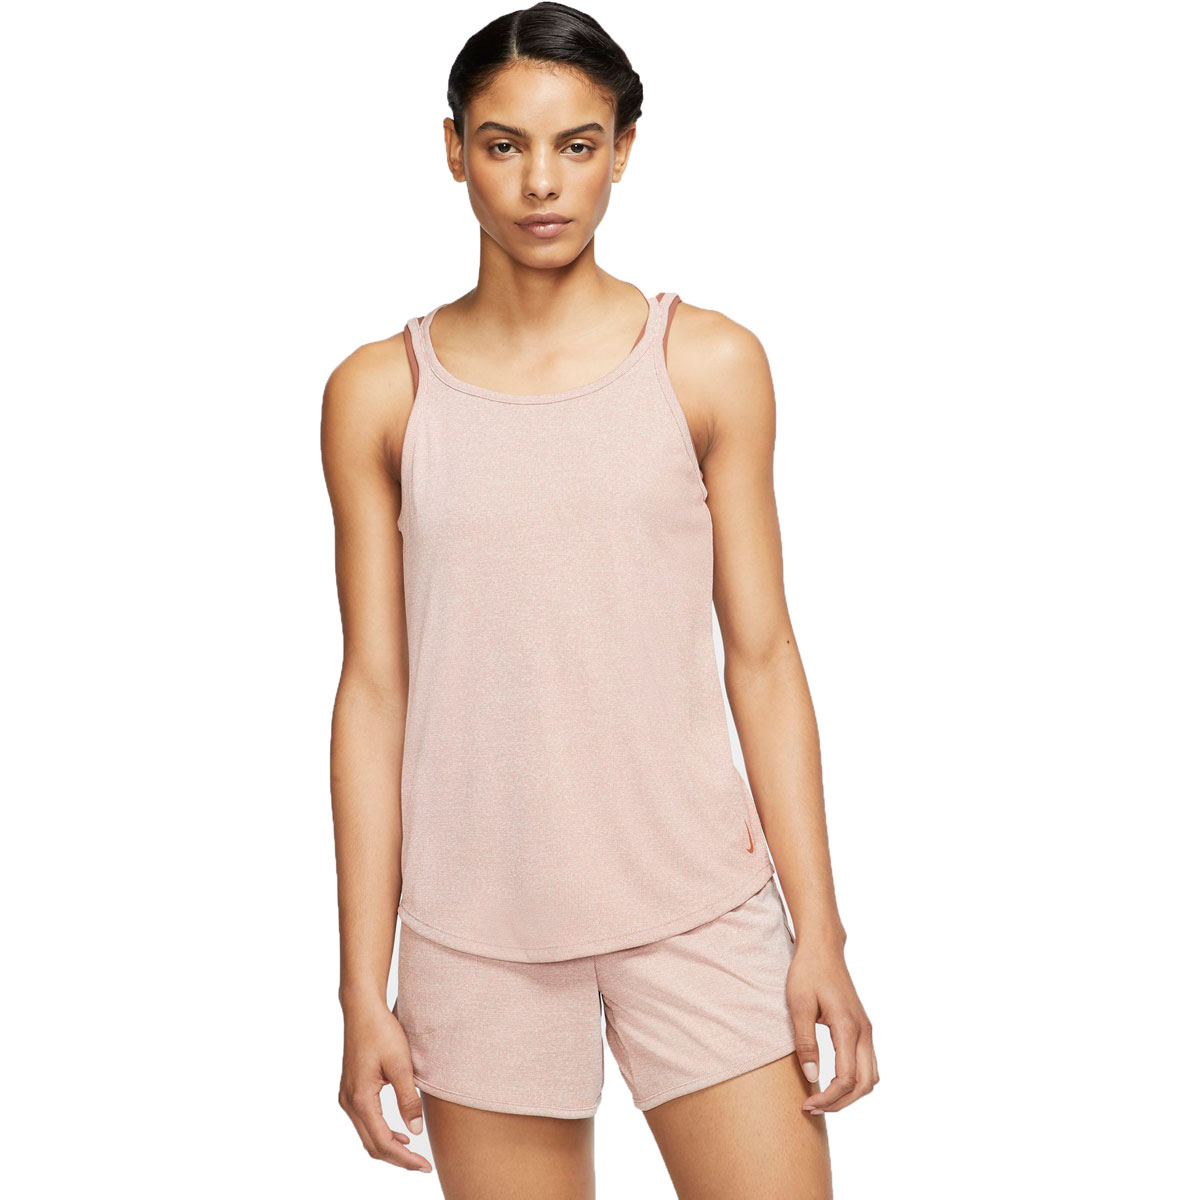 Women's Nike Yoga Tank - Color: Desert Orange/Htr/Desert Orange - Size: XS, Desert Orange/Heather/Desert Orange, large, image 1